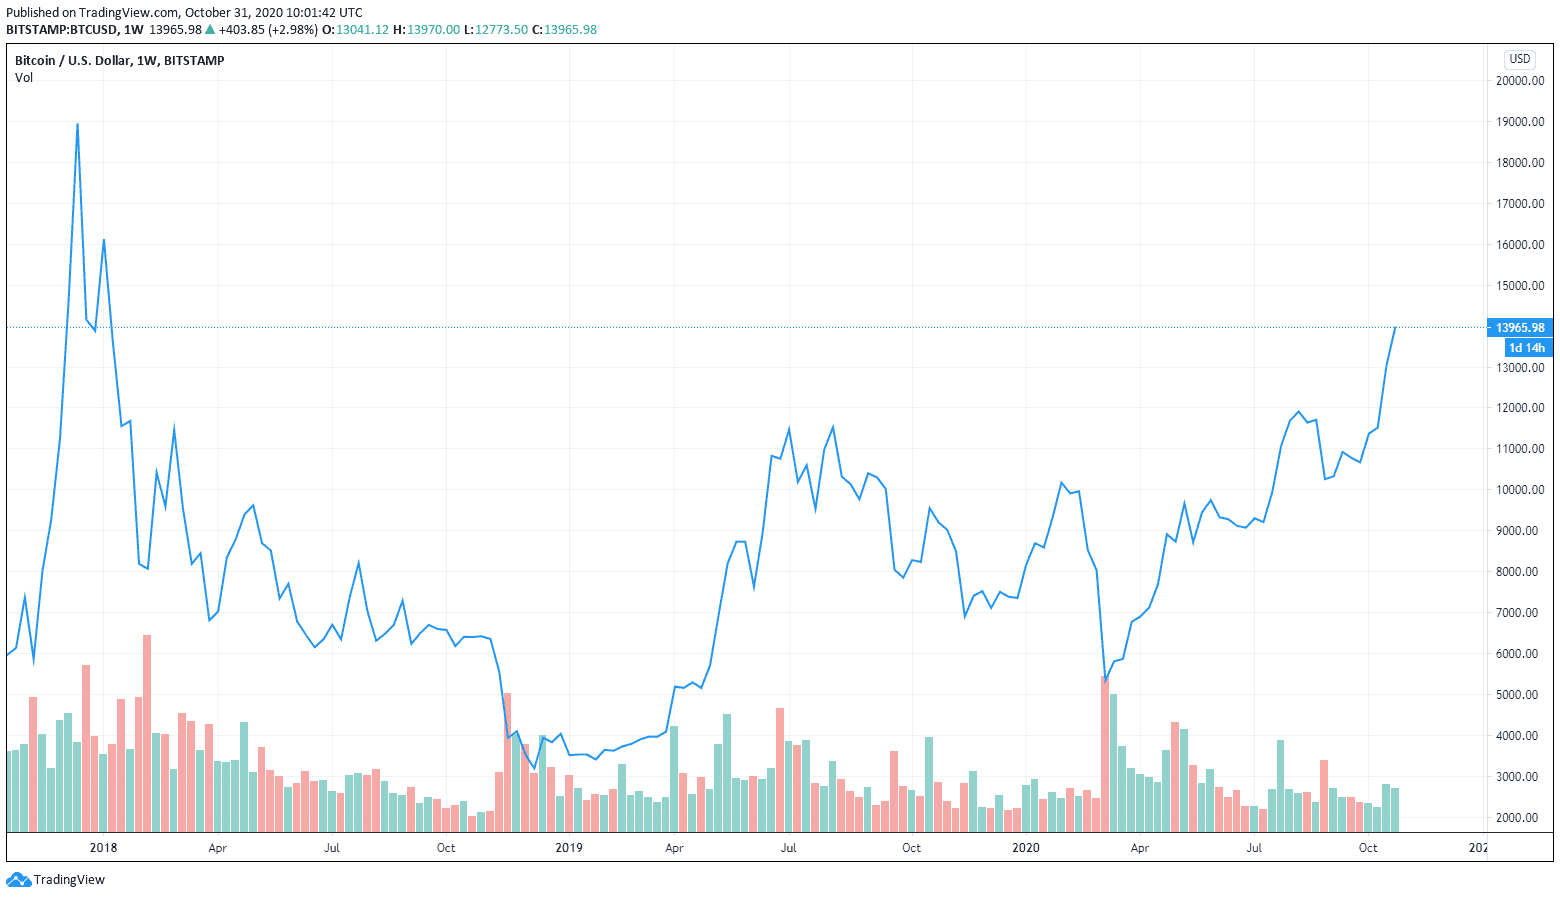 BREAKING: Bitcoin Just Broke To Its Highest Price Since Jan-2018